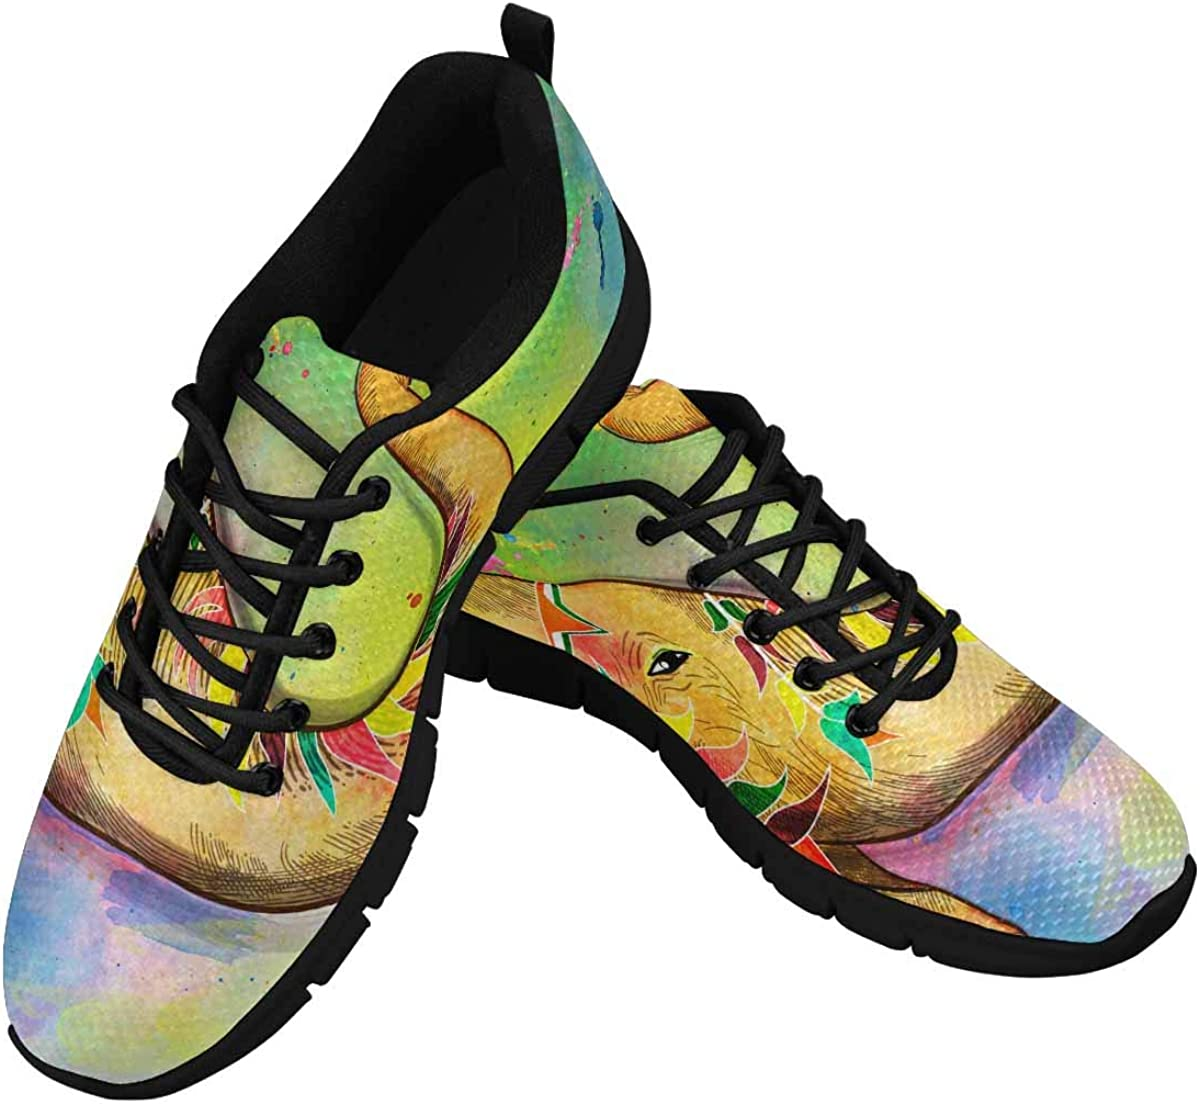 INTERESTPRINT Traditional Indian Festival Holi Women's Sneaker Lace Up Running Comfort Sports Shoes